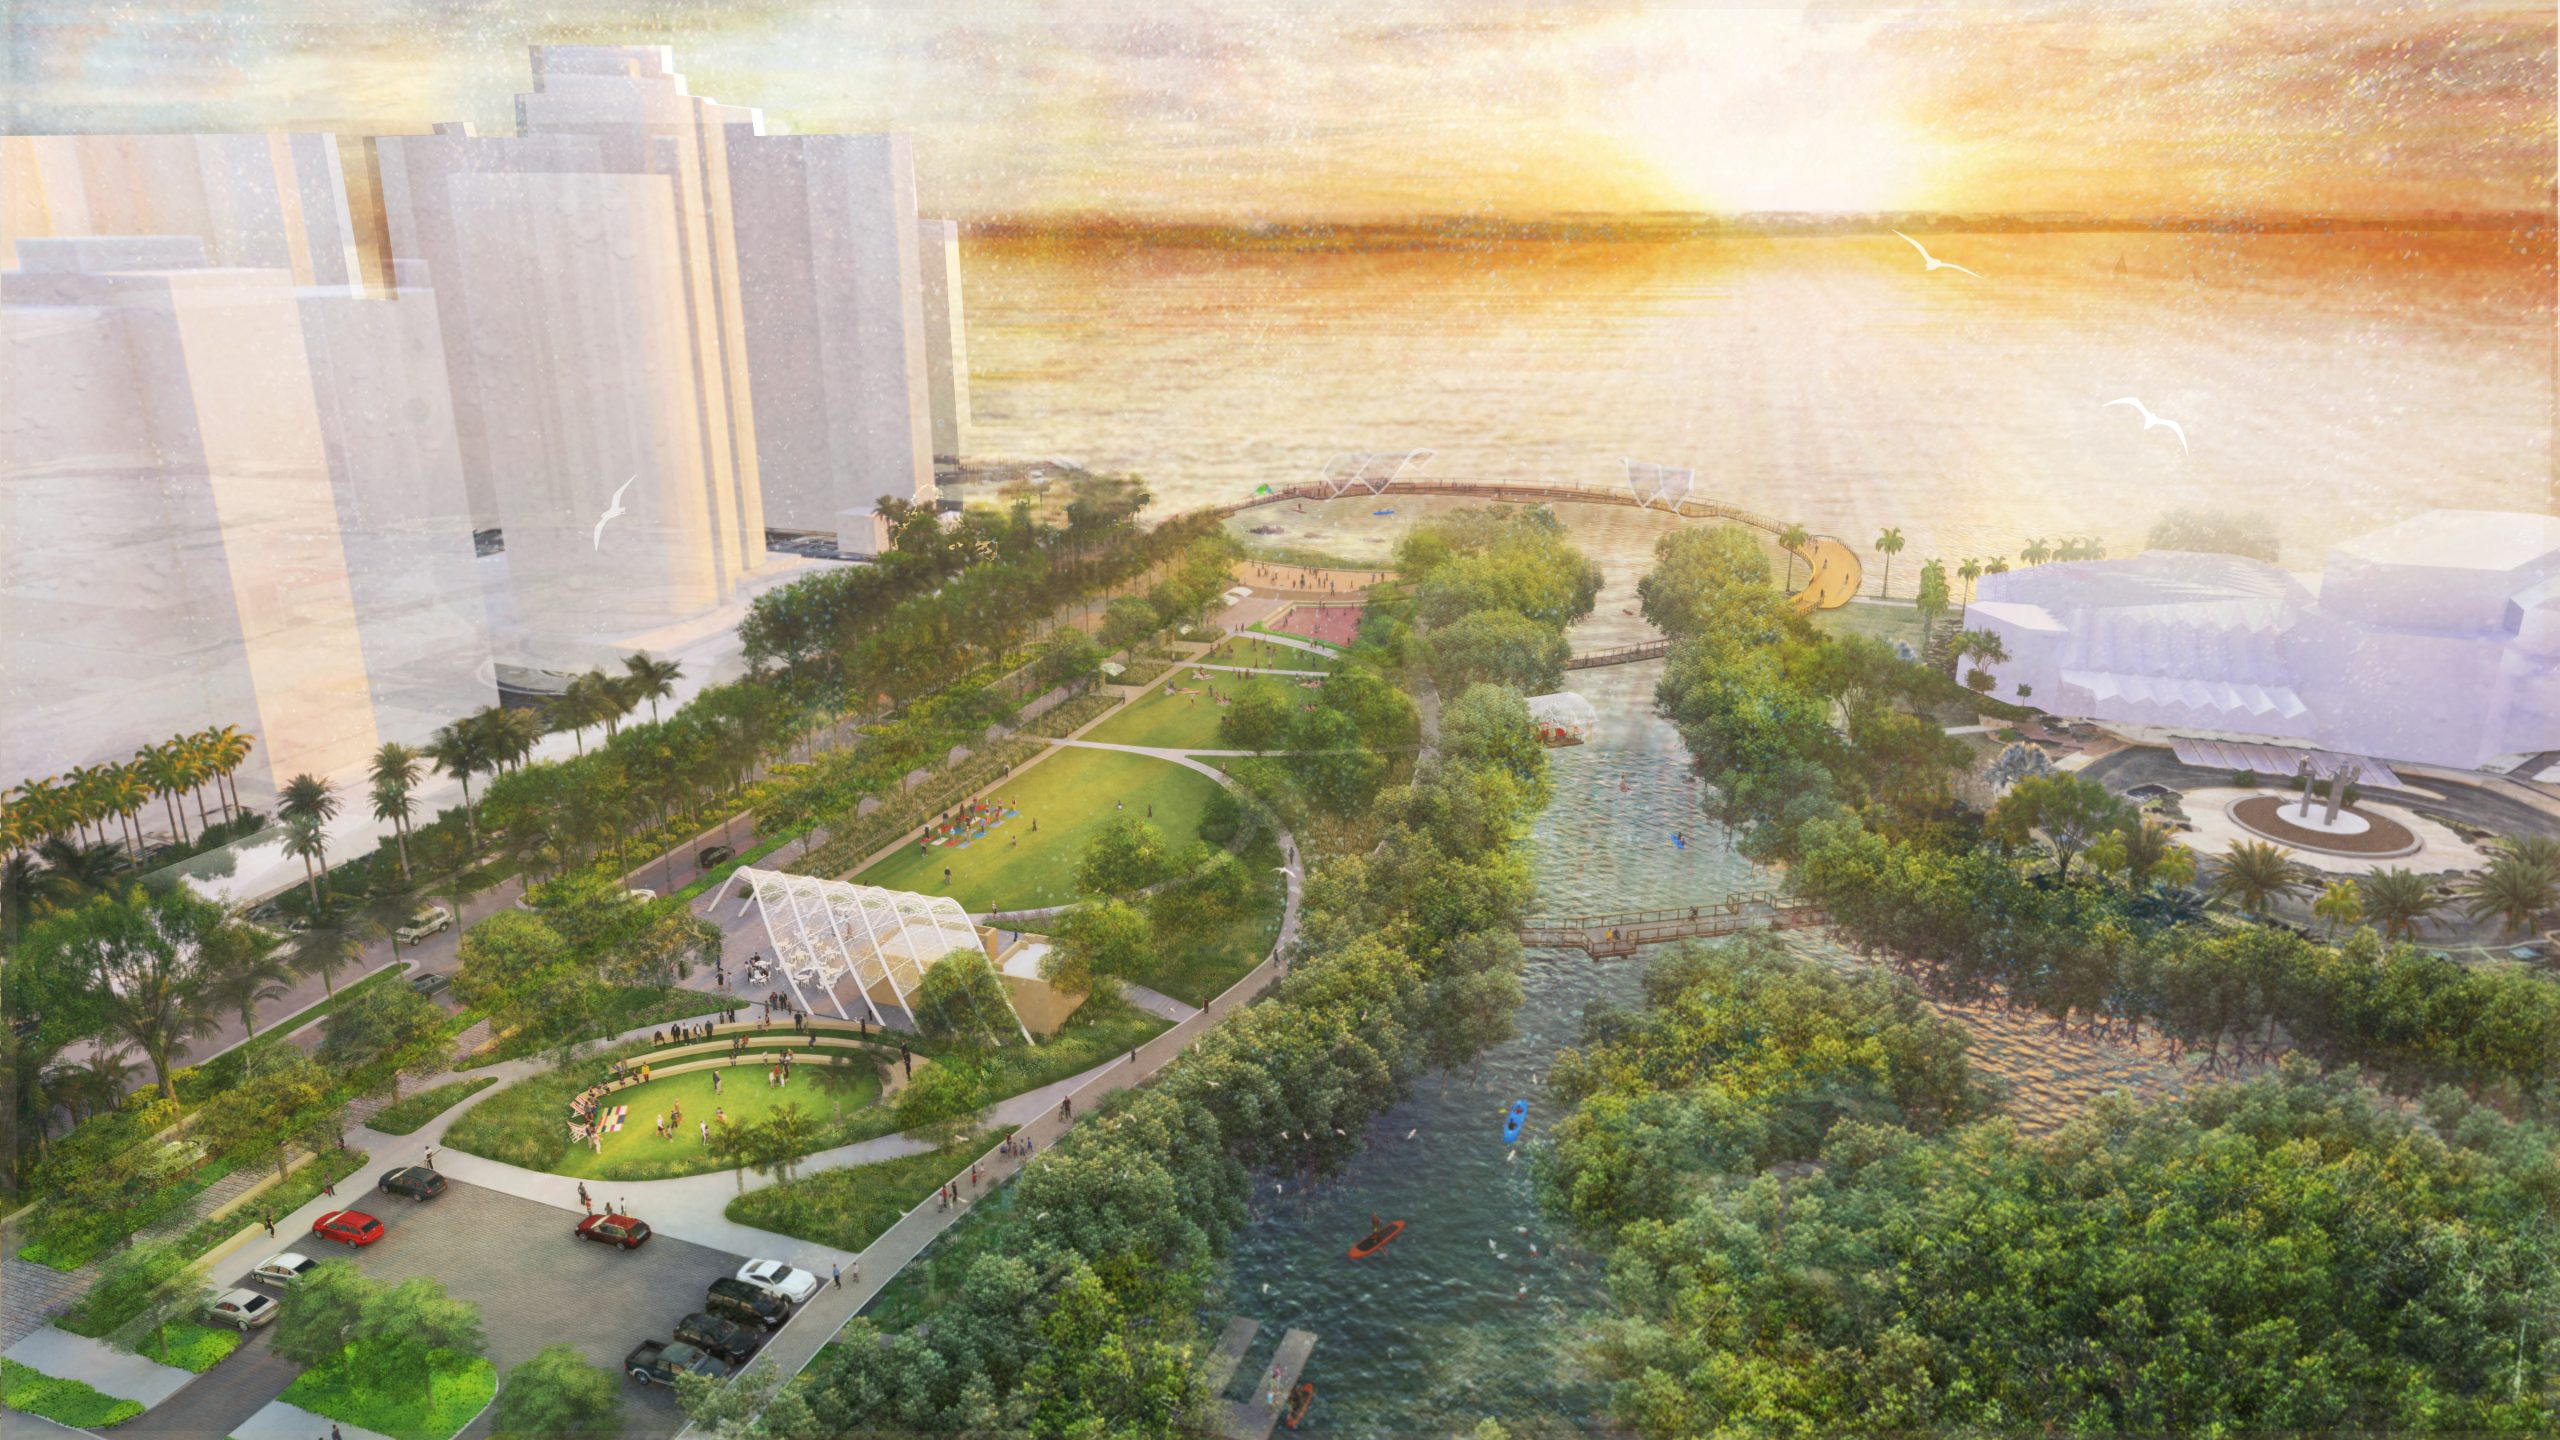 The Bay Park Celebrates Mangrove Walkway